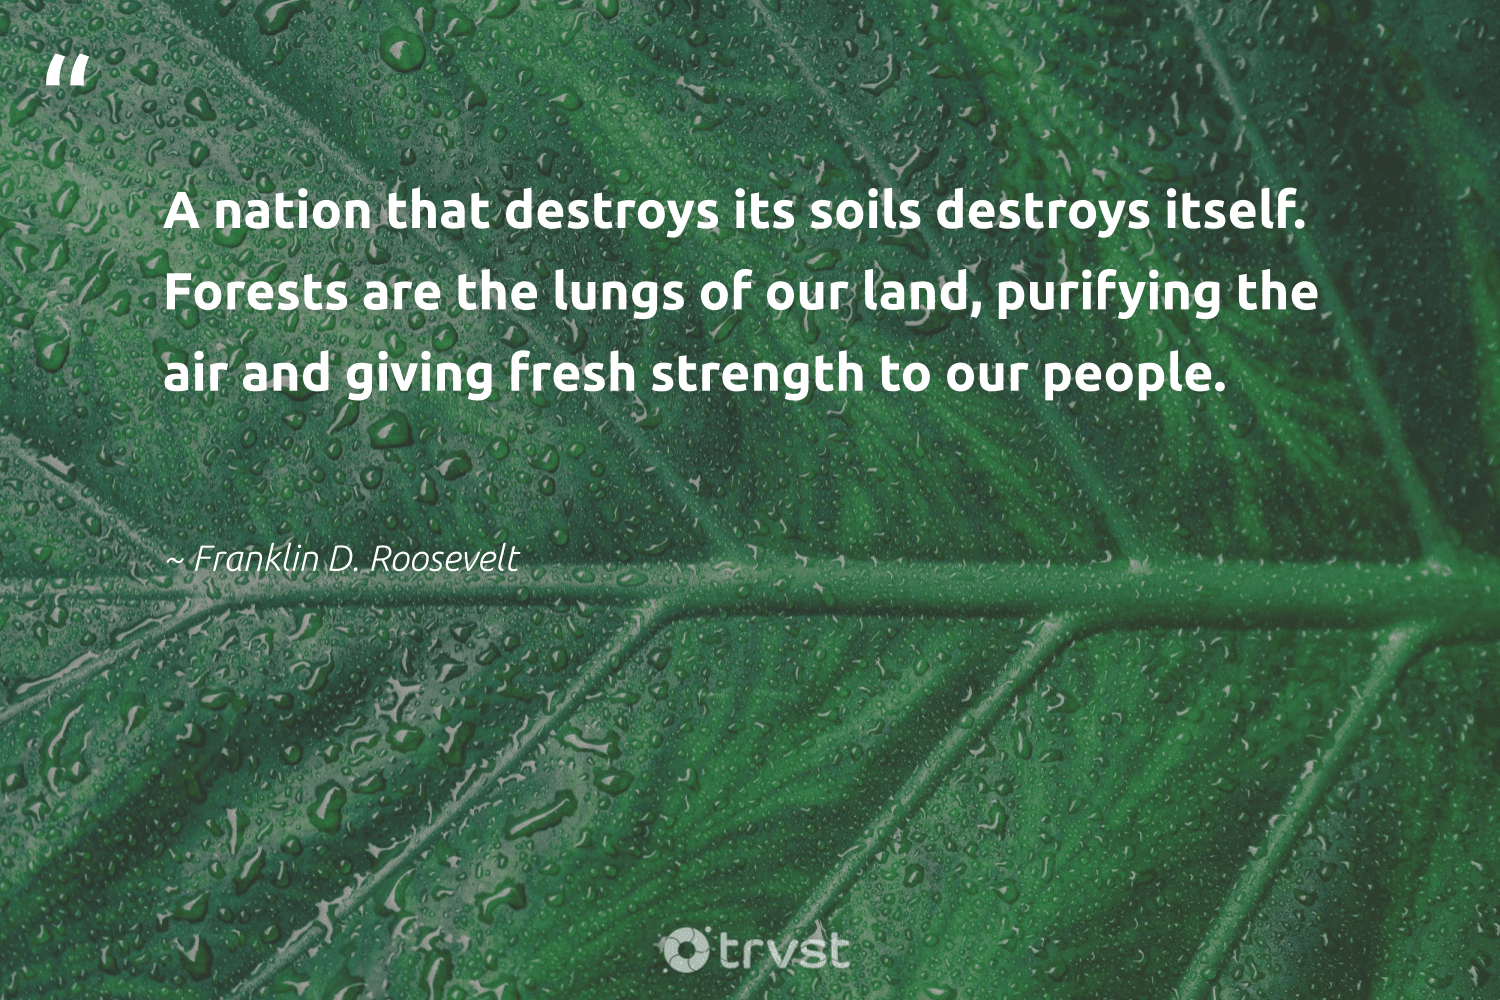 """A nation that destroys its soils destroys itself. Forests are the lungs of our land, purifying the air and giving fresh strength to our people.""  - Franklin D. Roosevelt #trvst #quotes #volunteer #dosomething #giveback #thinkgreen #sustainability #beinspired #eco #gogreen #getoutside #ecoconscious"